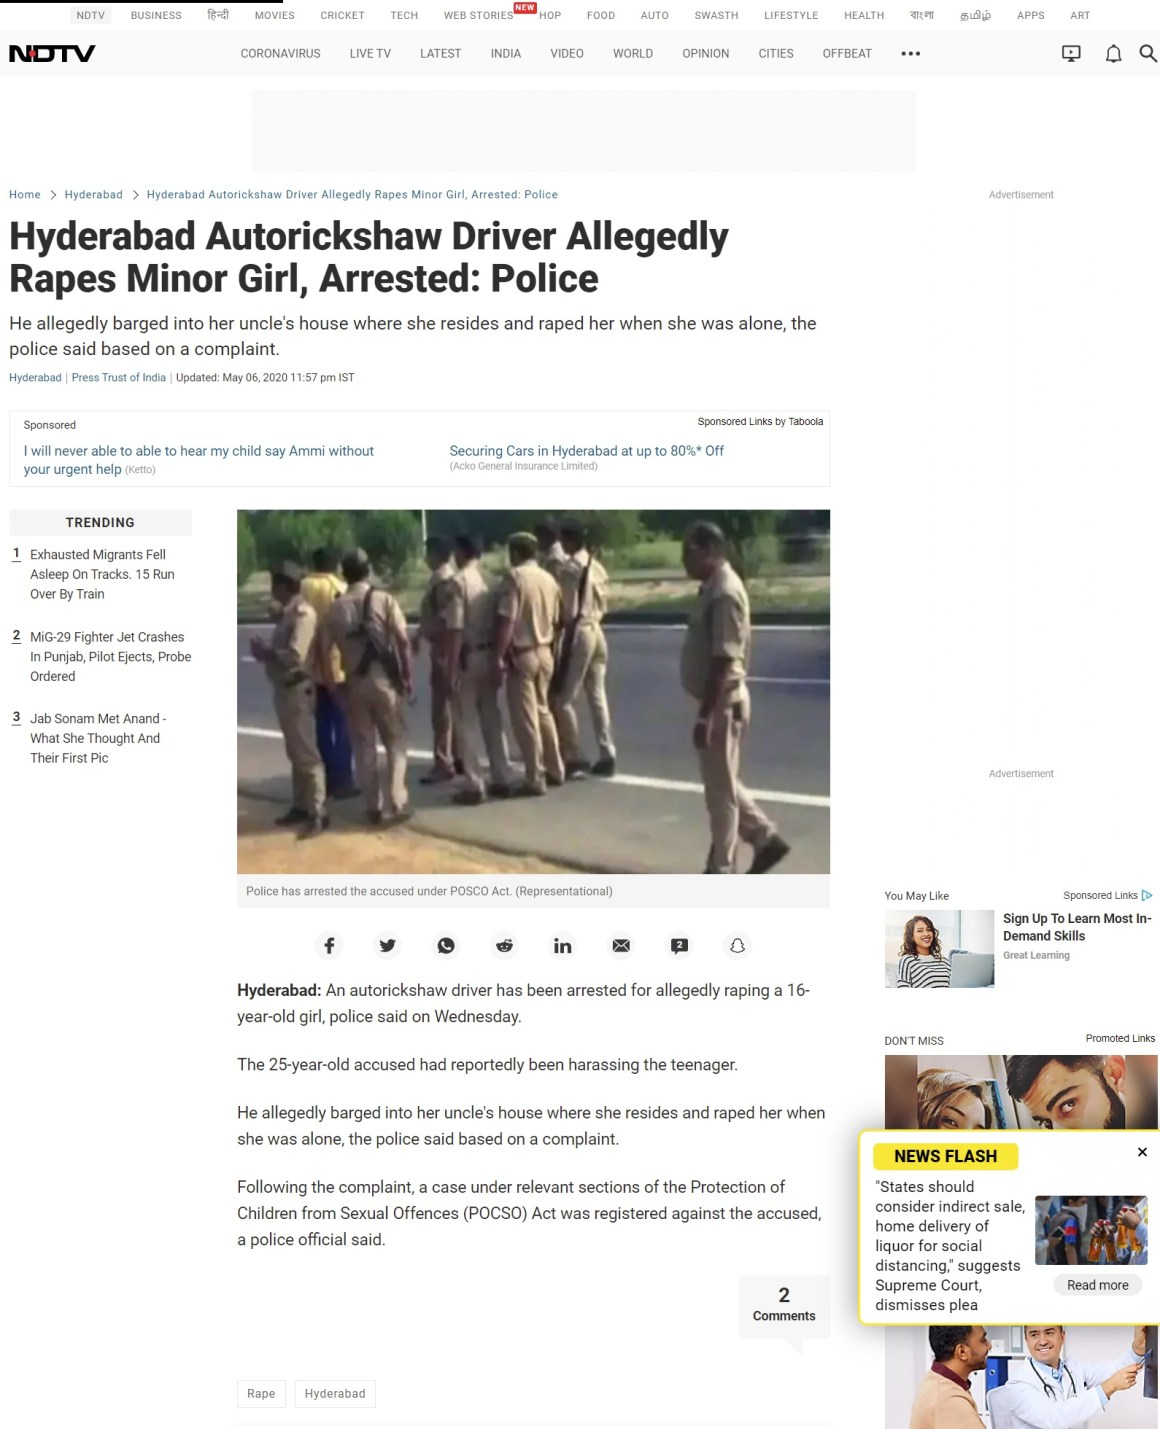 Image about Some Media Outlets Misreport Auto Driver Rapes Minor Girl